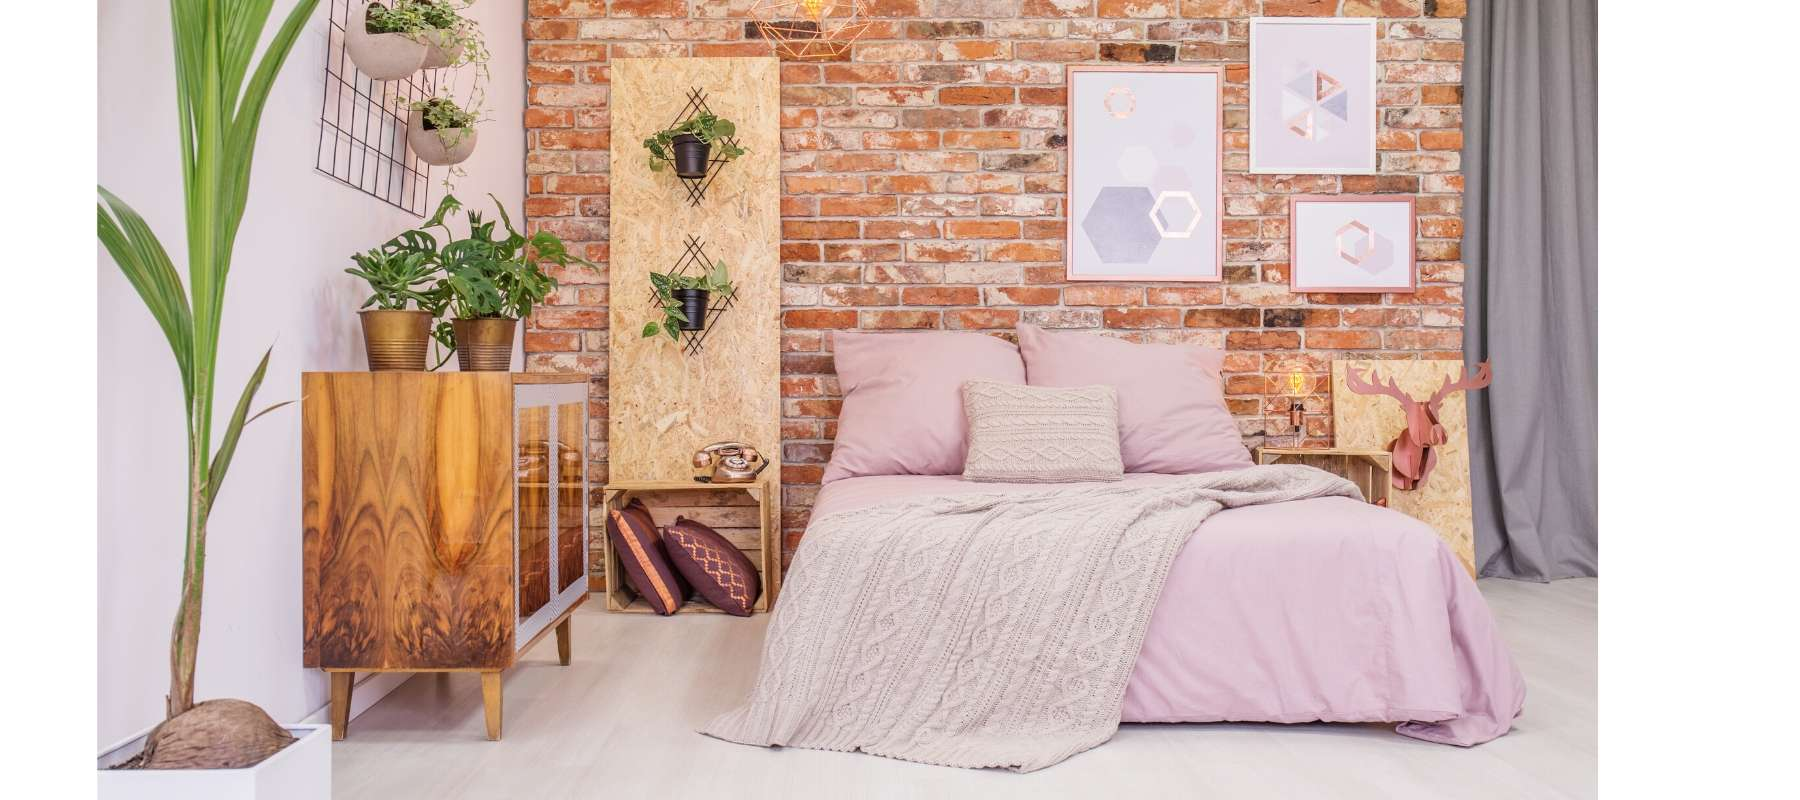 Double bed with blush pink covers against an exposed brick wall